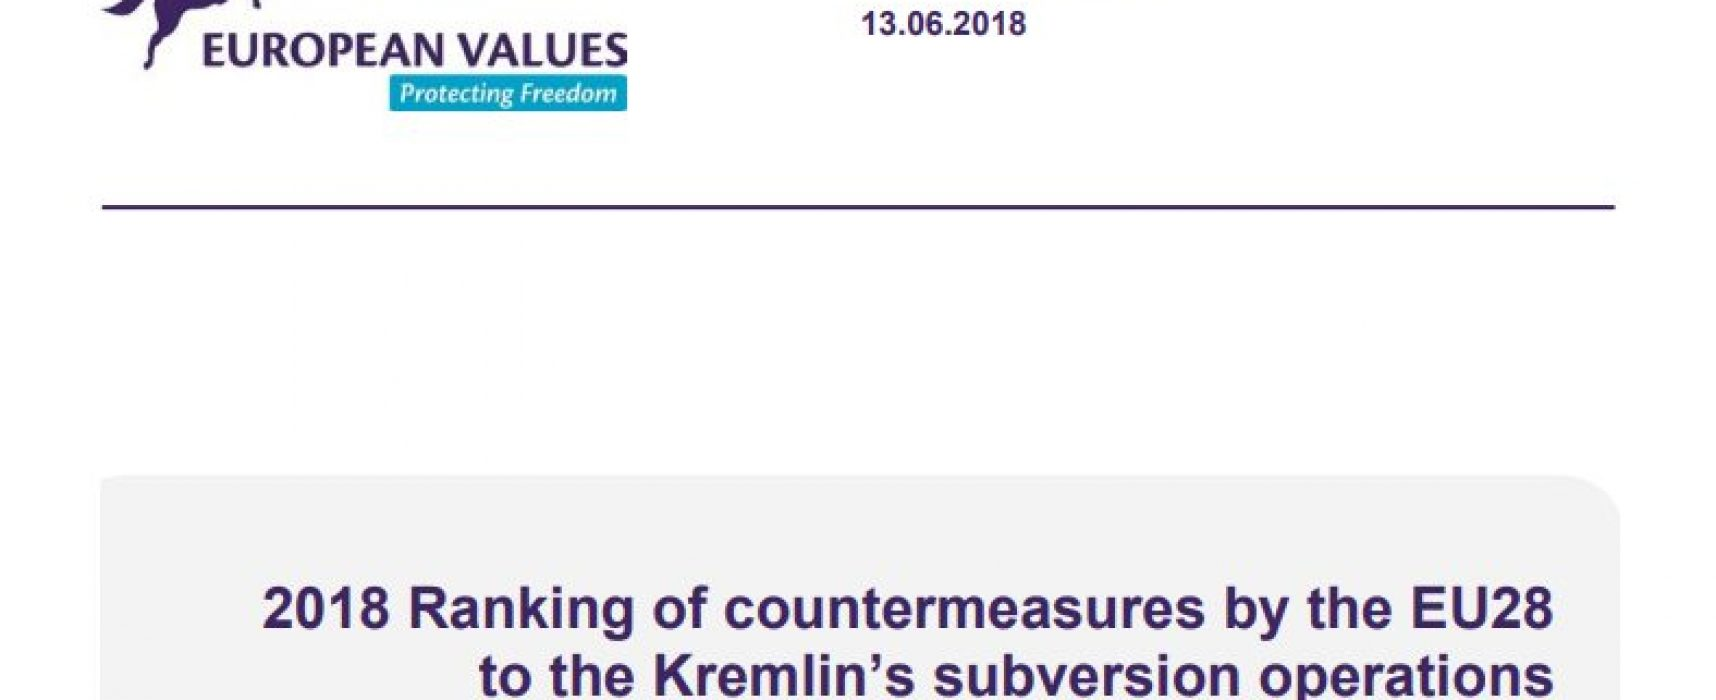 2018 Ranking of countermeasures by the EU28 to the Kremlin's subversion operations